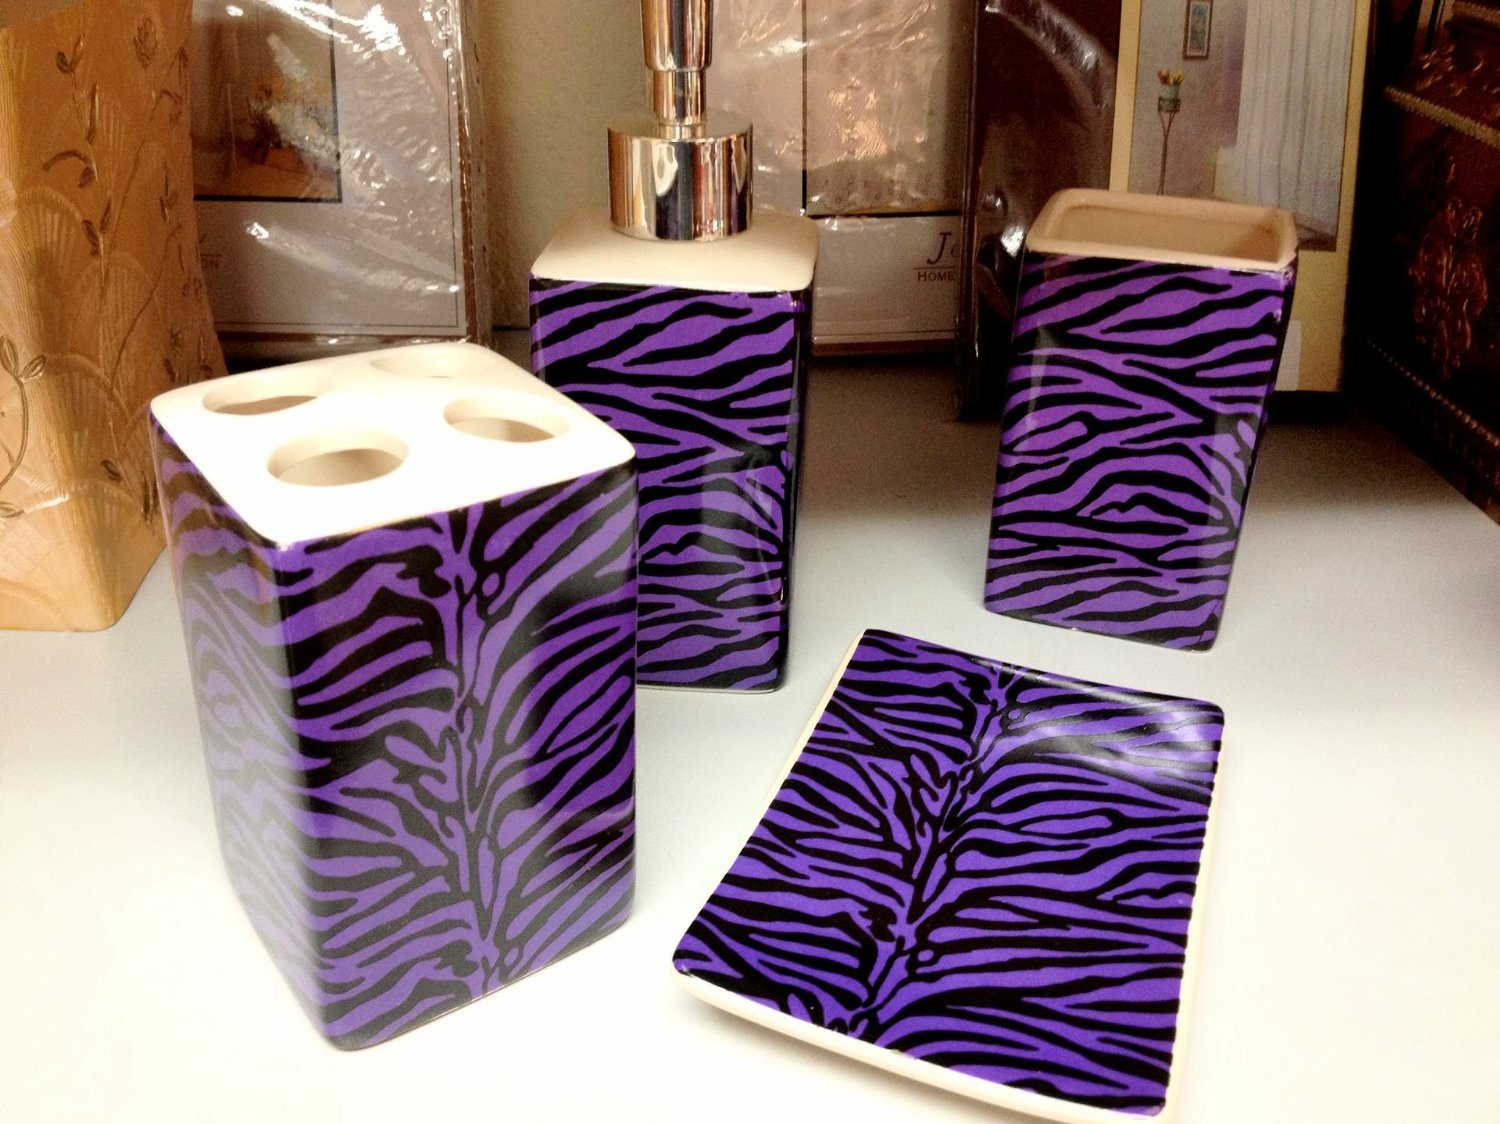 Design a jungle safari bathroom bathroom decorating for Bathroom ideas zebra print